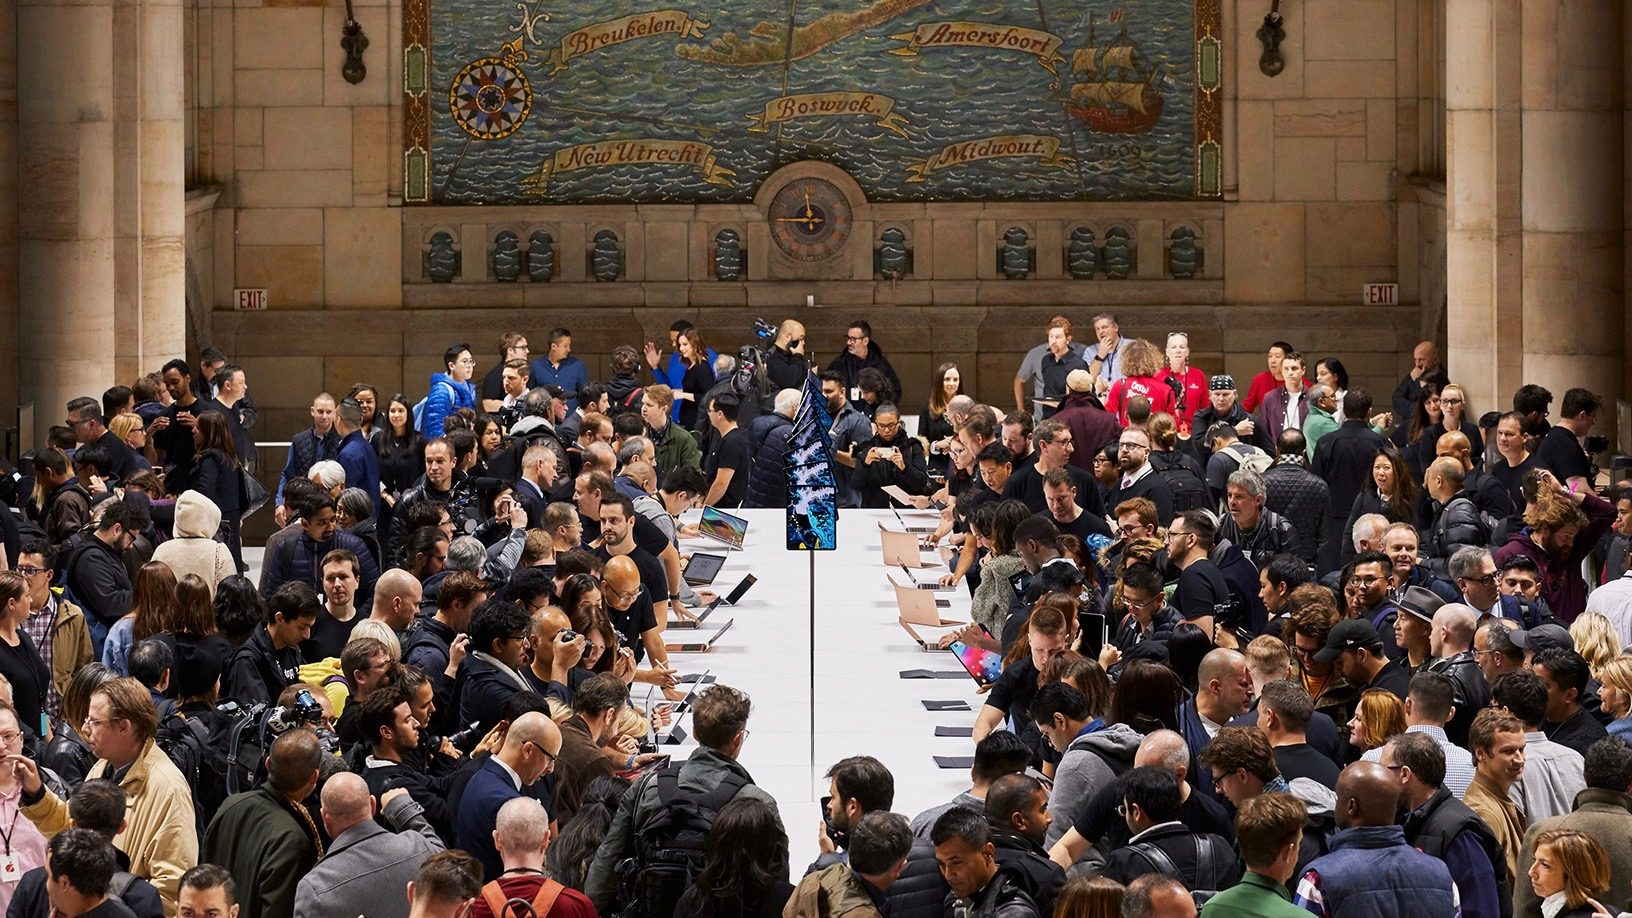 What new Apple product are you most looking forward to in 2019? [Poll]